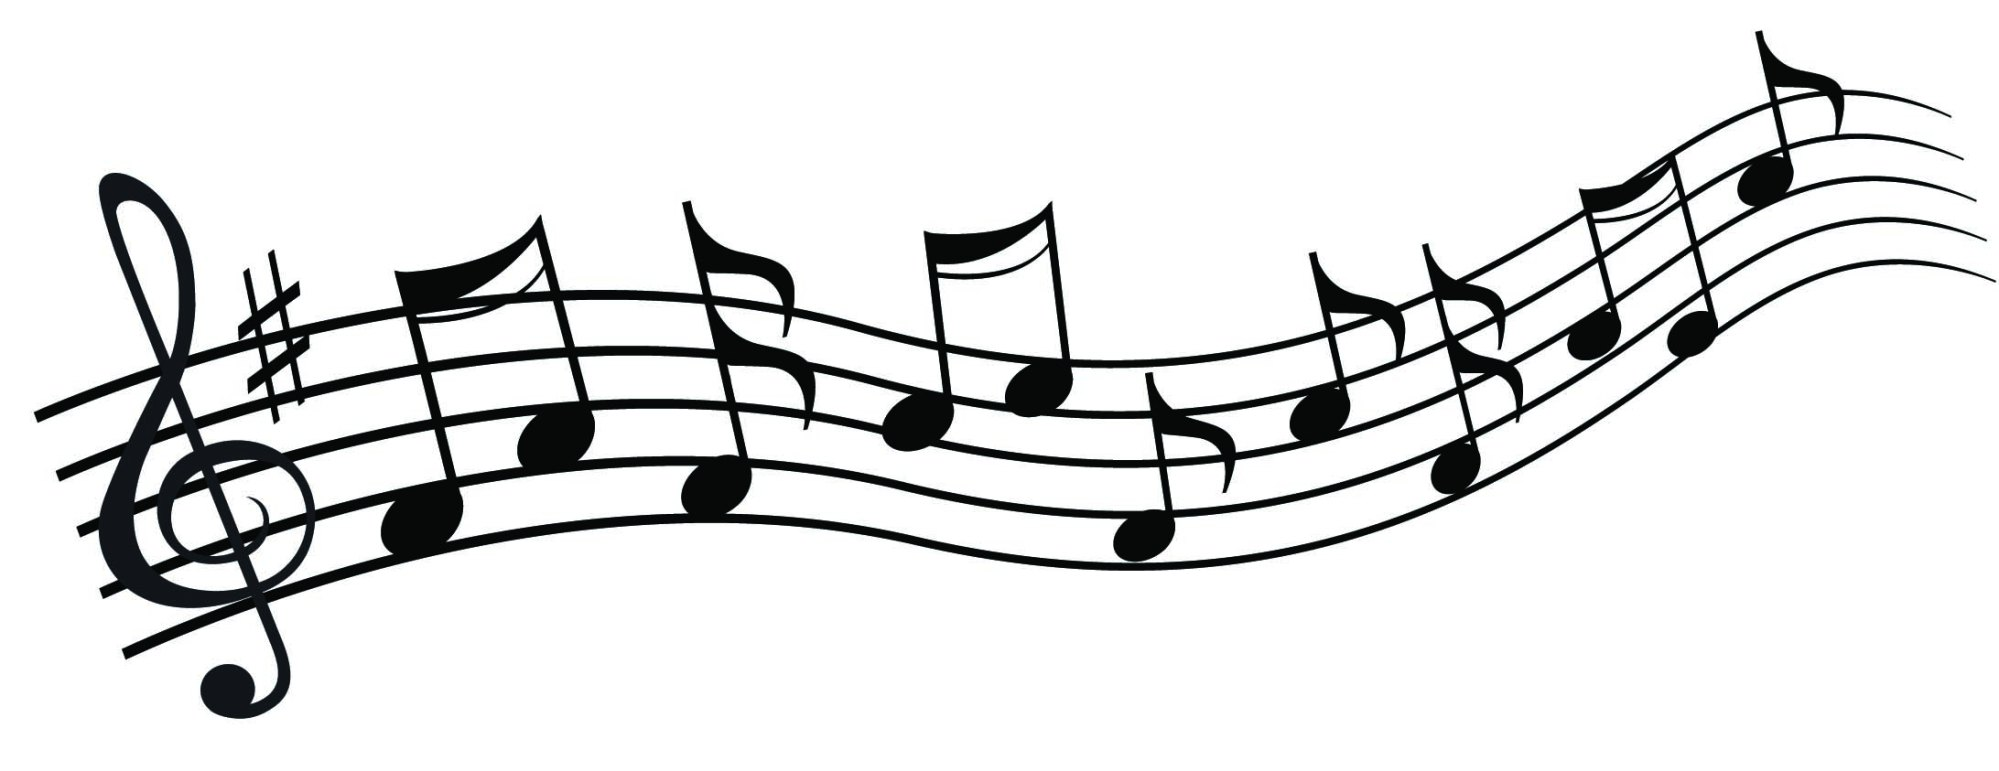 hight resolution of 2184x843 chic design musical clipart music notes clip art free note image 1